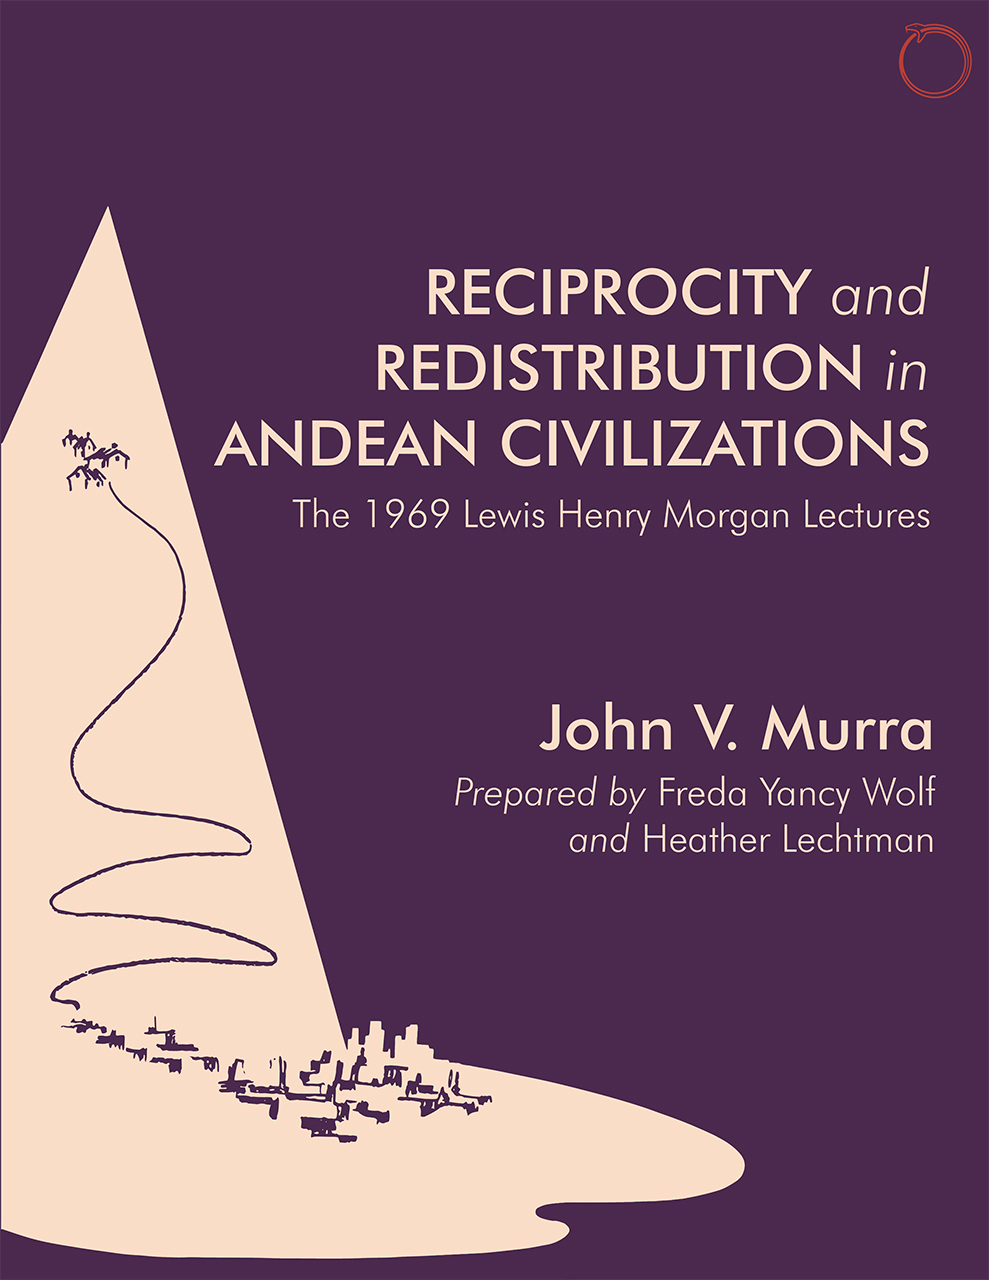 Reciprocity and Redistribution in Andean Civilizations